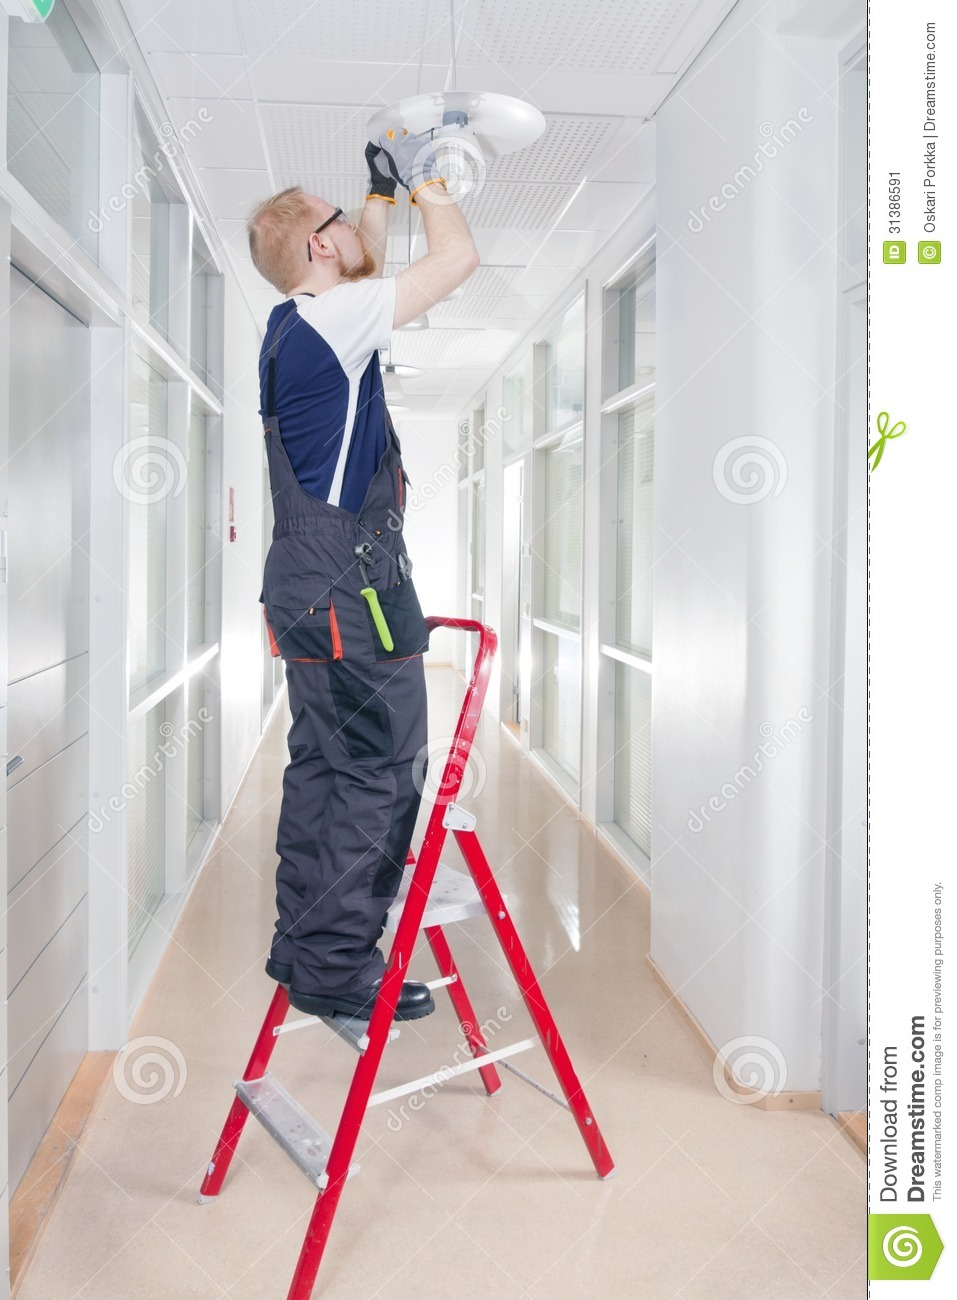 Janitor Fixing Broken Lamp Stock Image Image Of